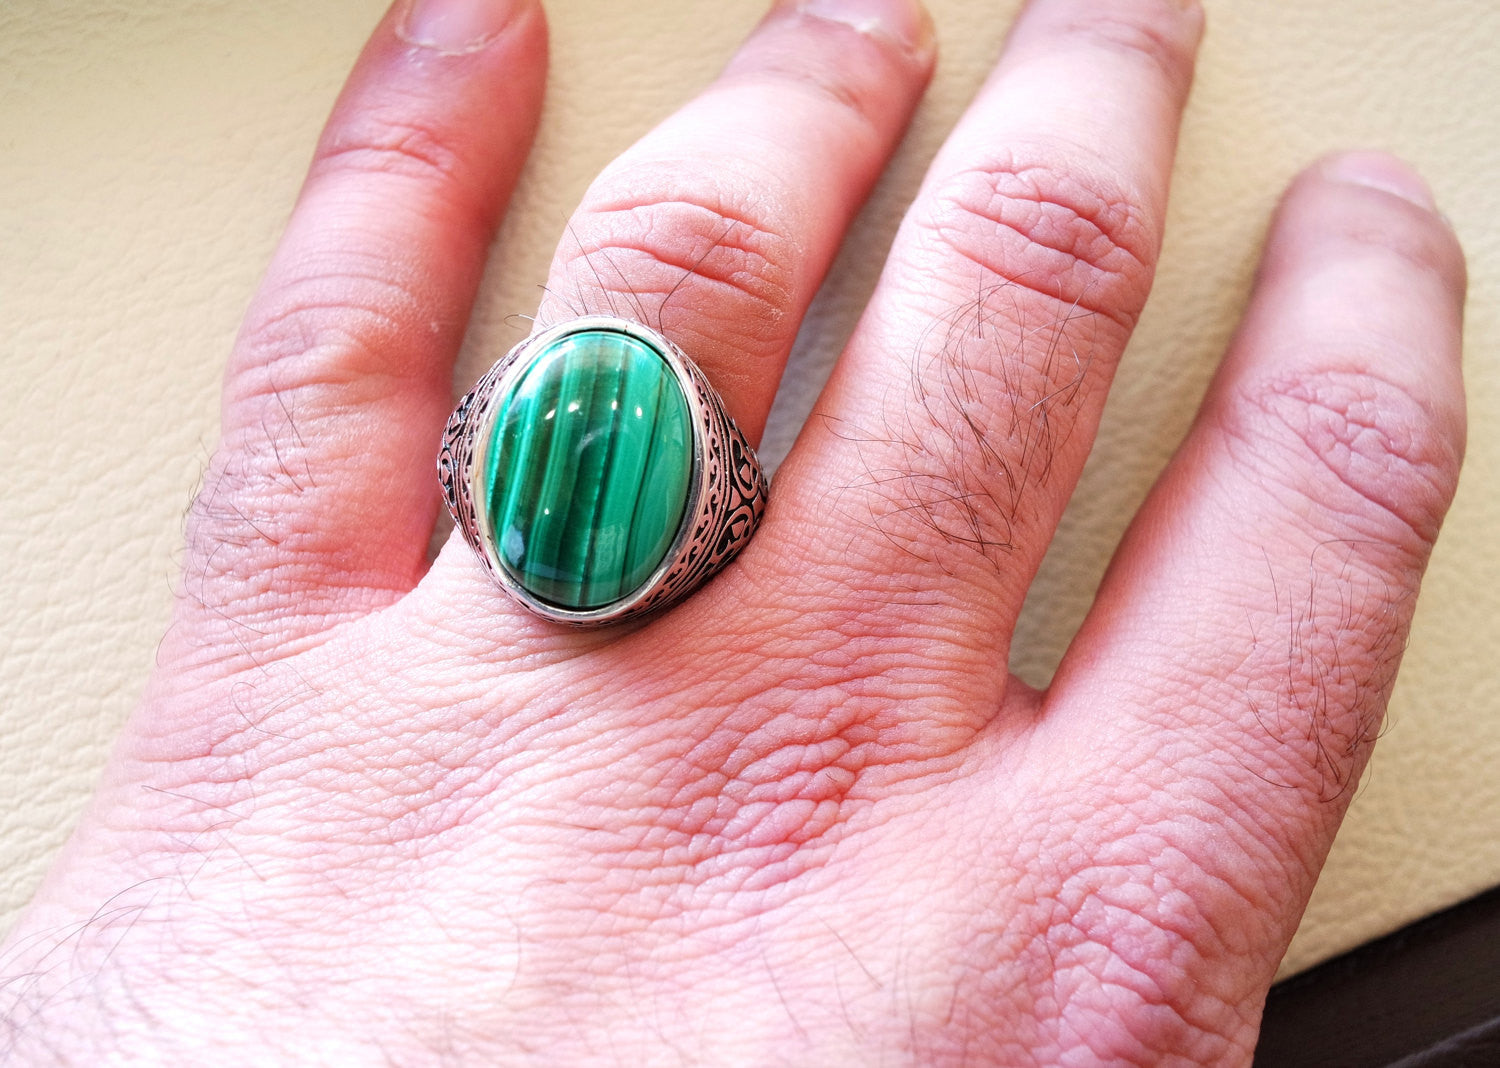 malachite big oval natural semi precious stone sterling silver man ring all sizes jewelry green cabochon antique middle eastern style